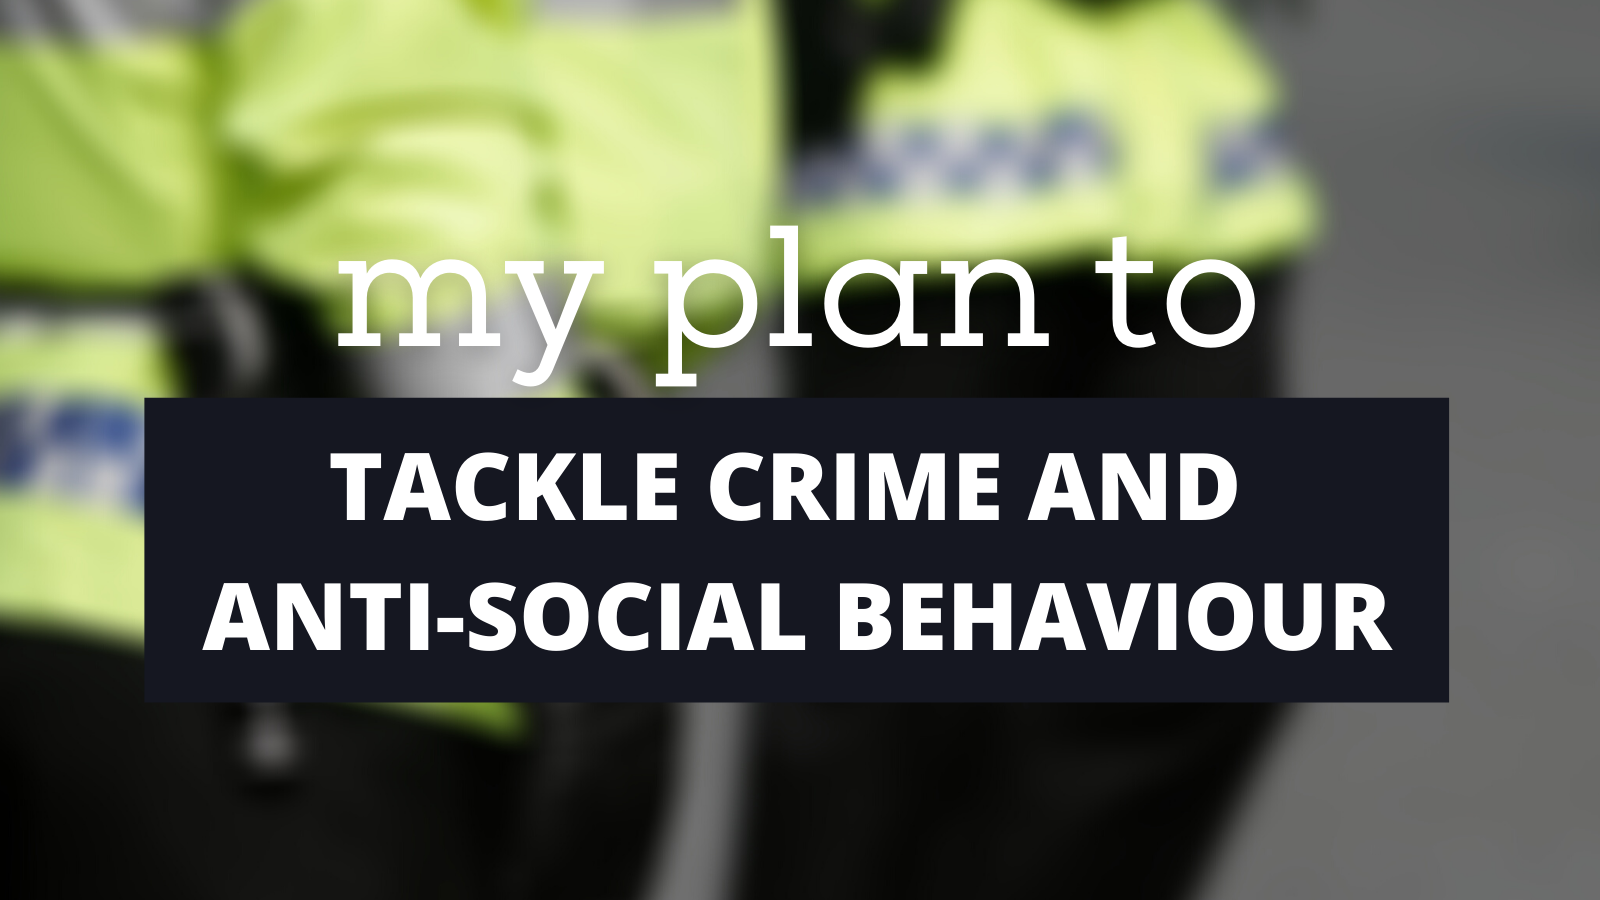 My plan to tackle crime and anti-social behaviour